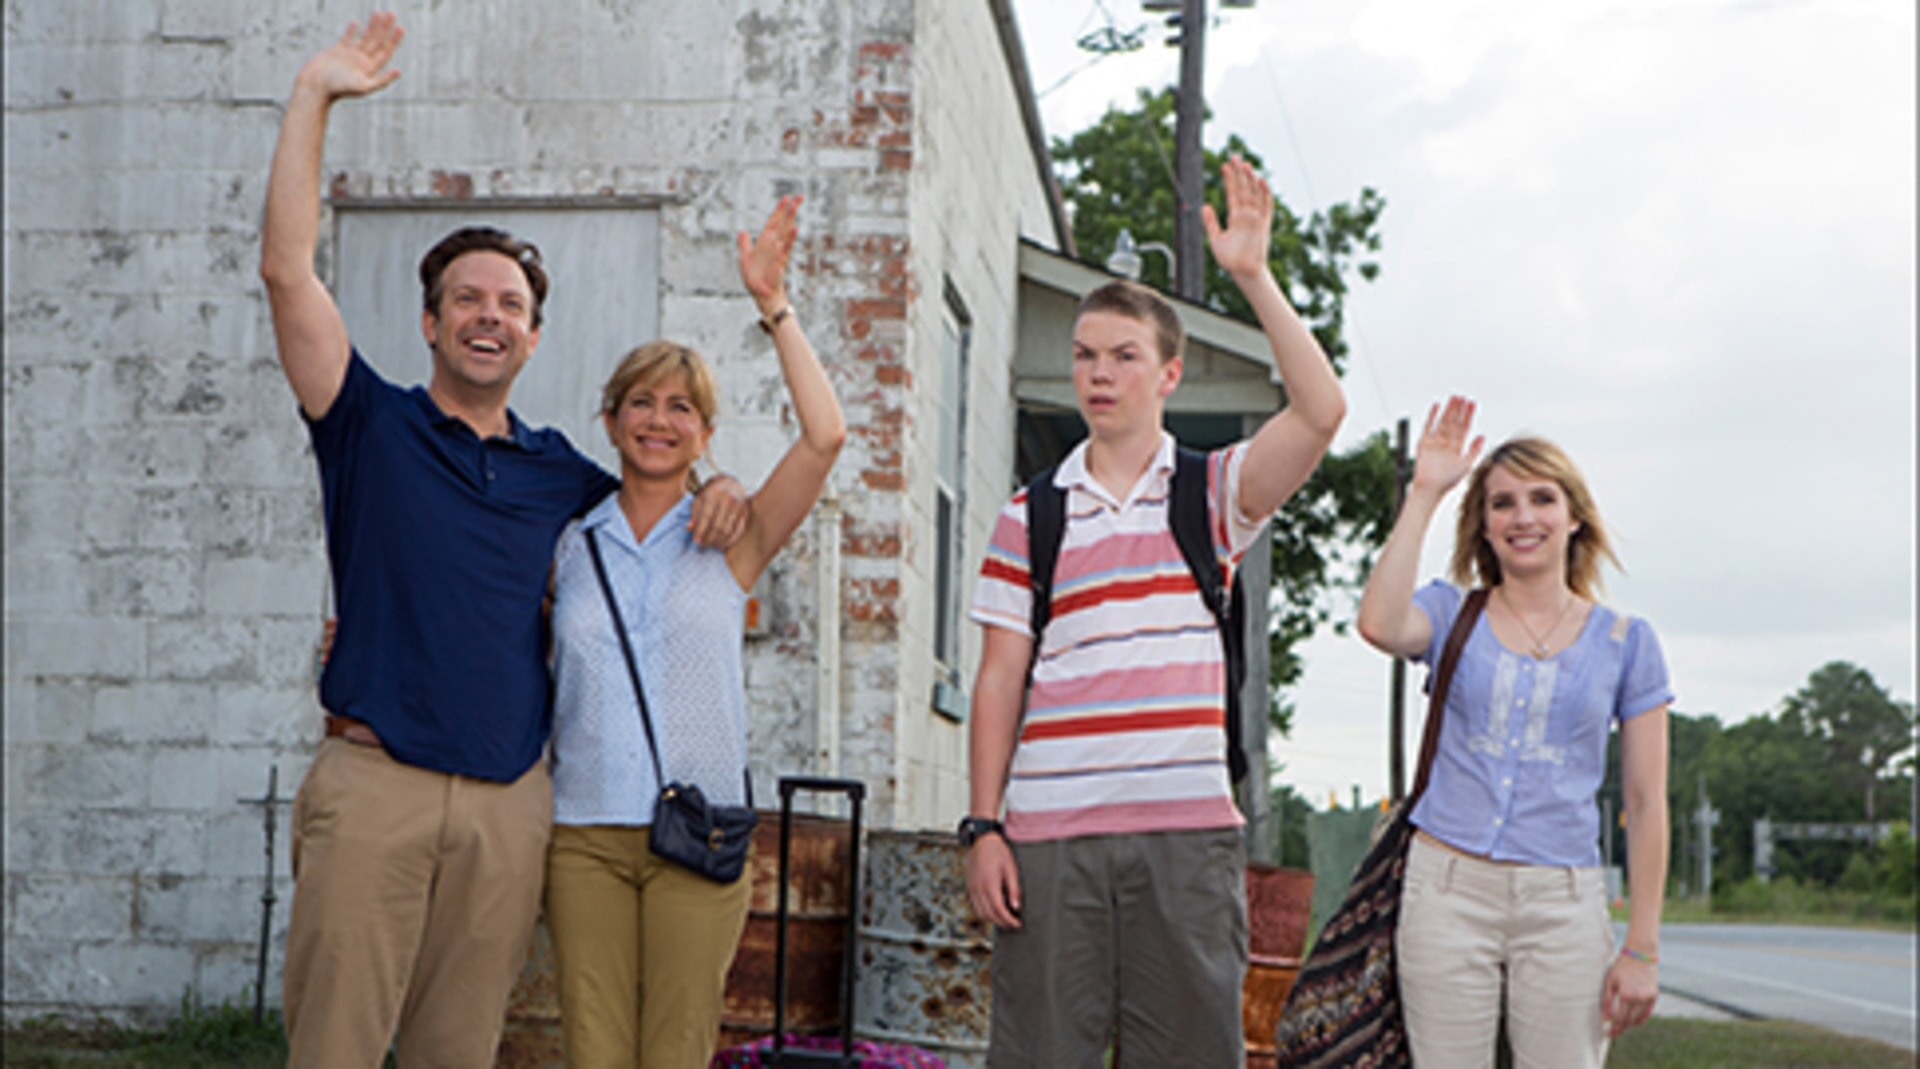 We're the Millers - Image 3